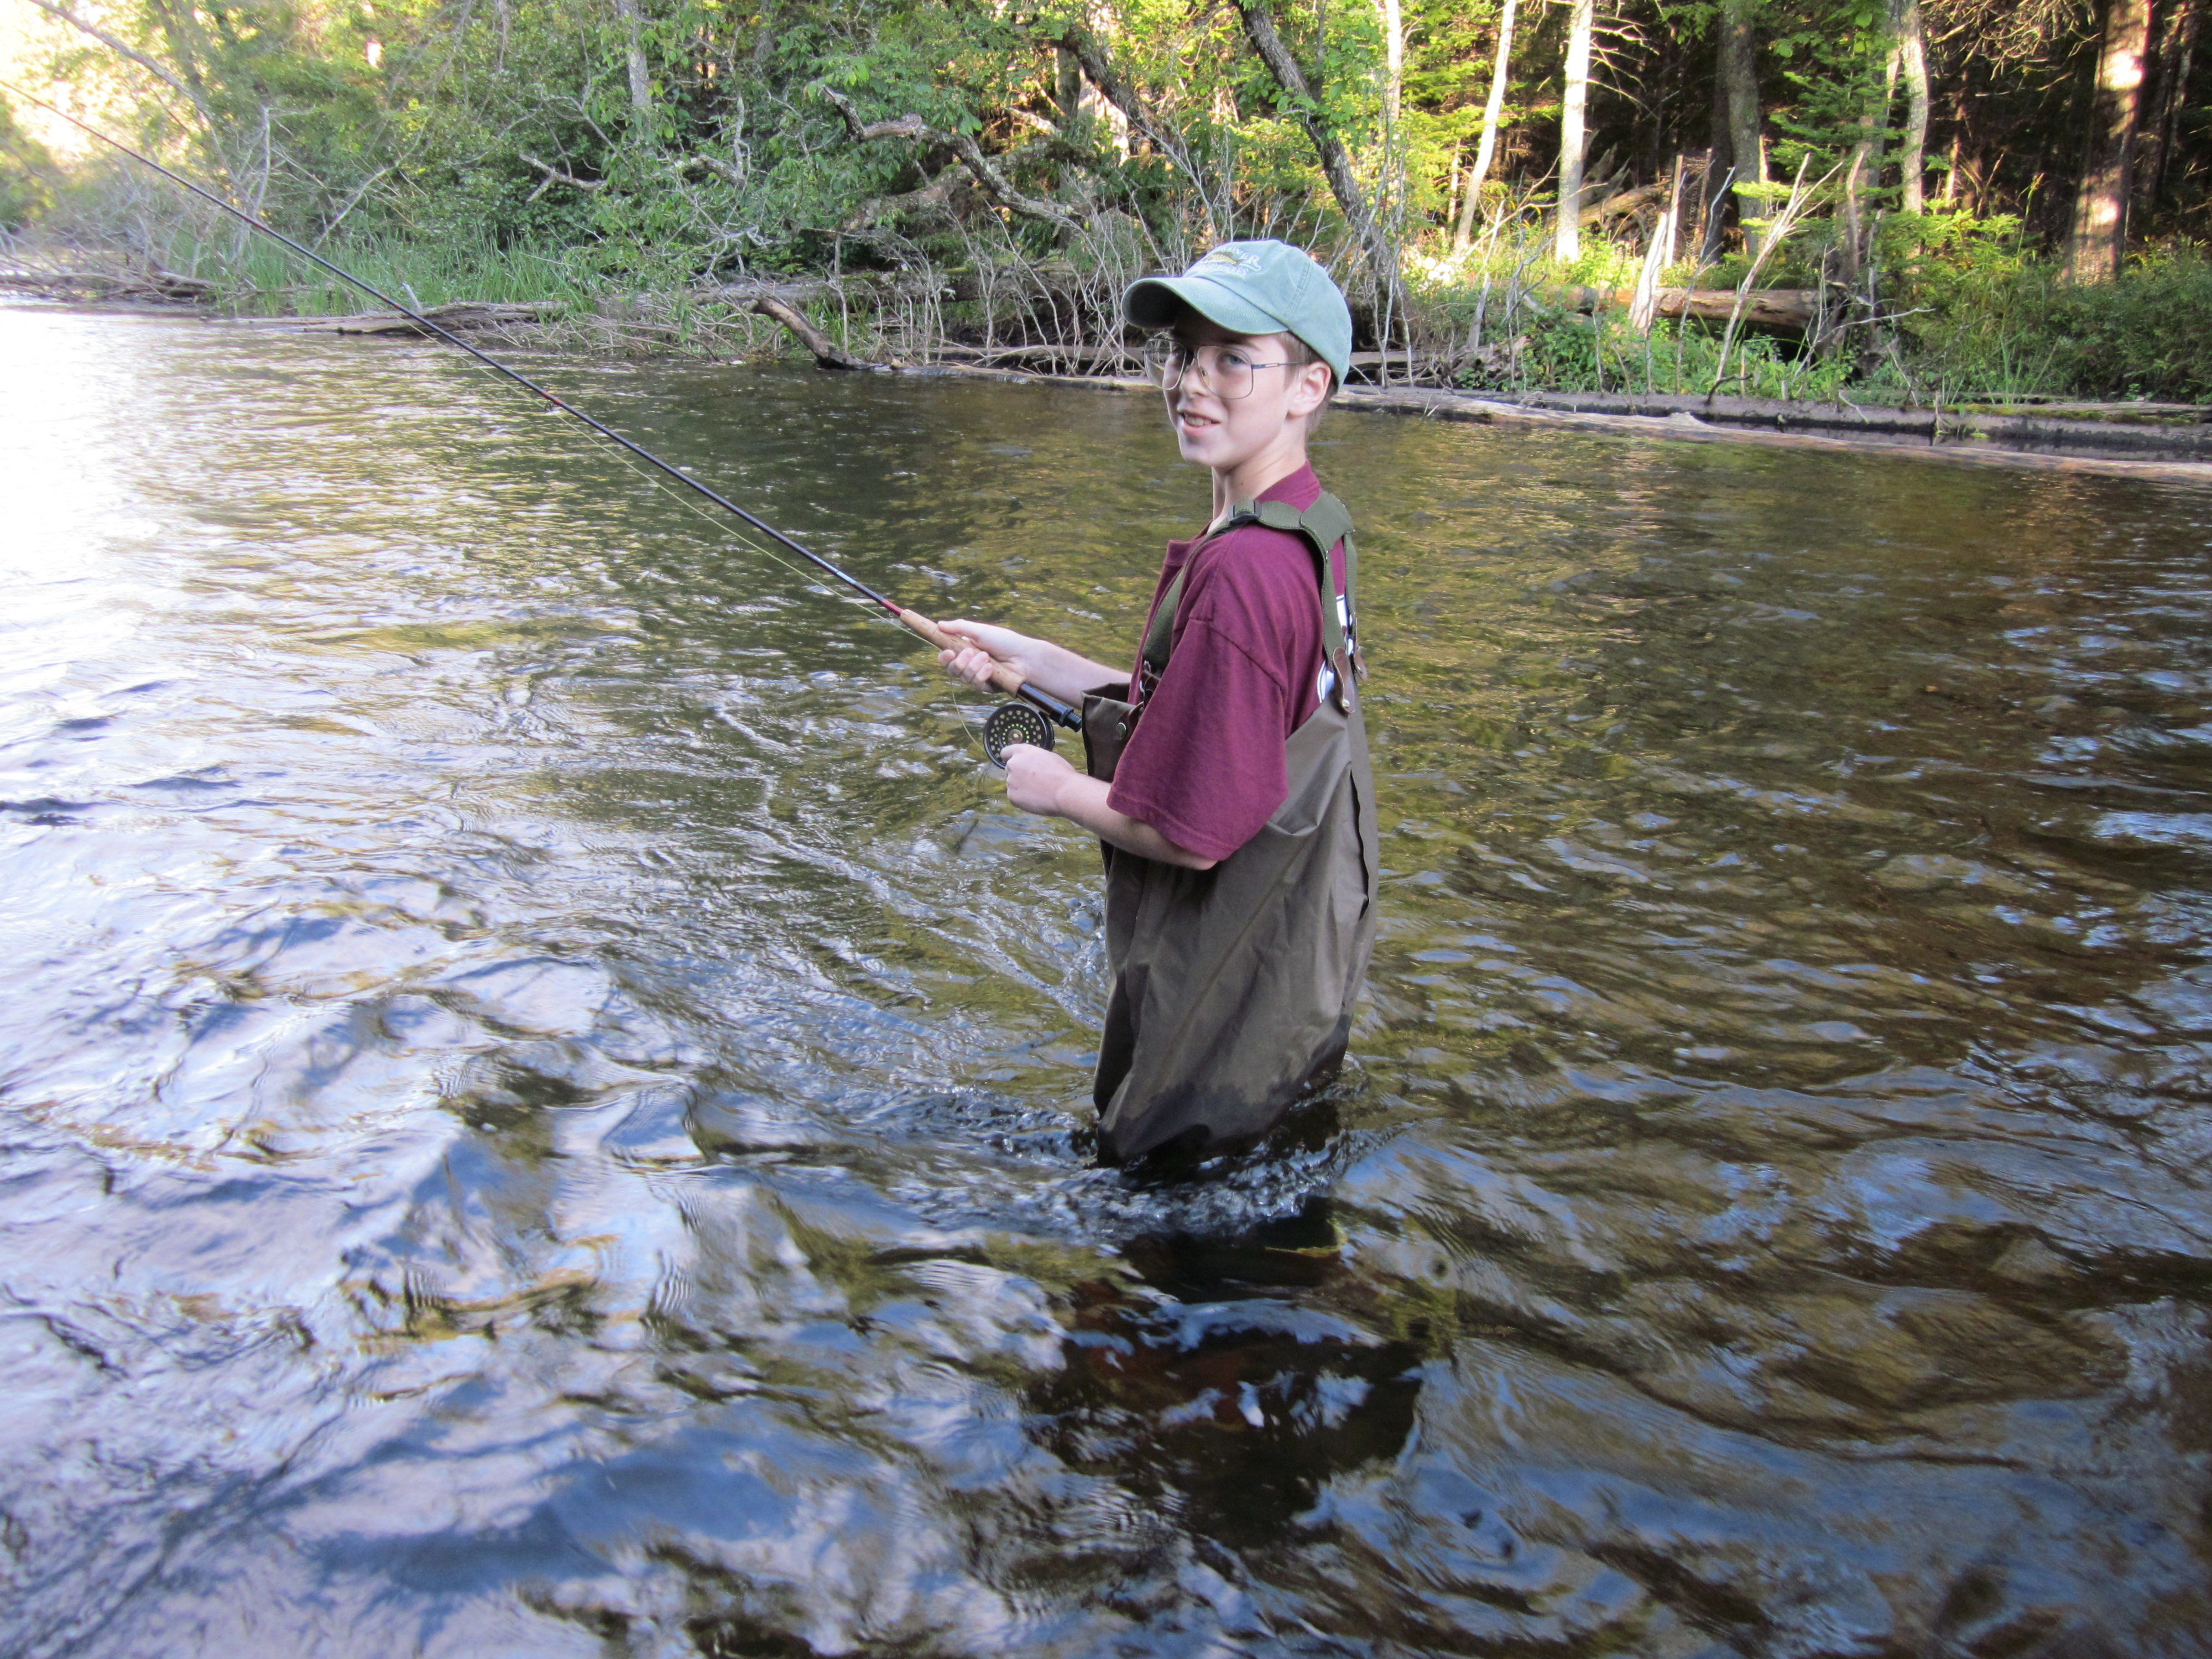 He looks pretty serious here with that Sage & Hardy in his hands...Even though he's never fished before.